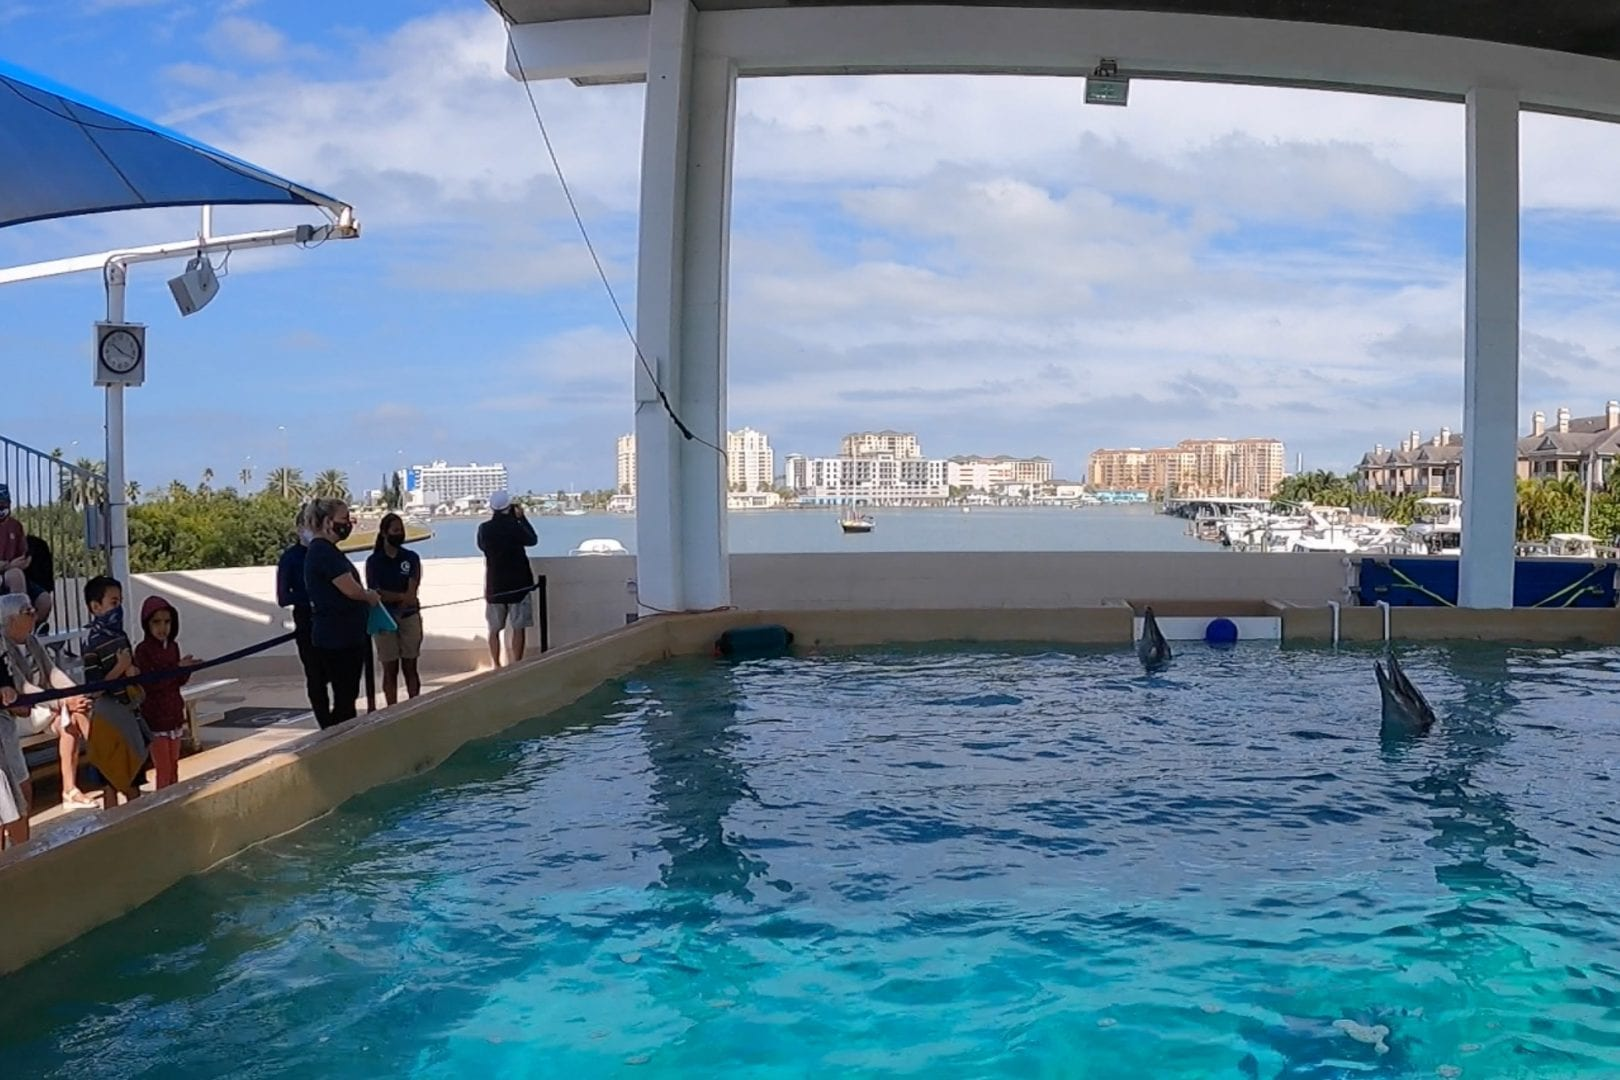 A dolphin swims in tank at Clearwater Aquarium